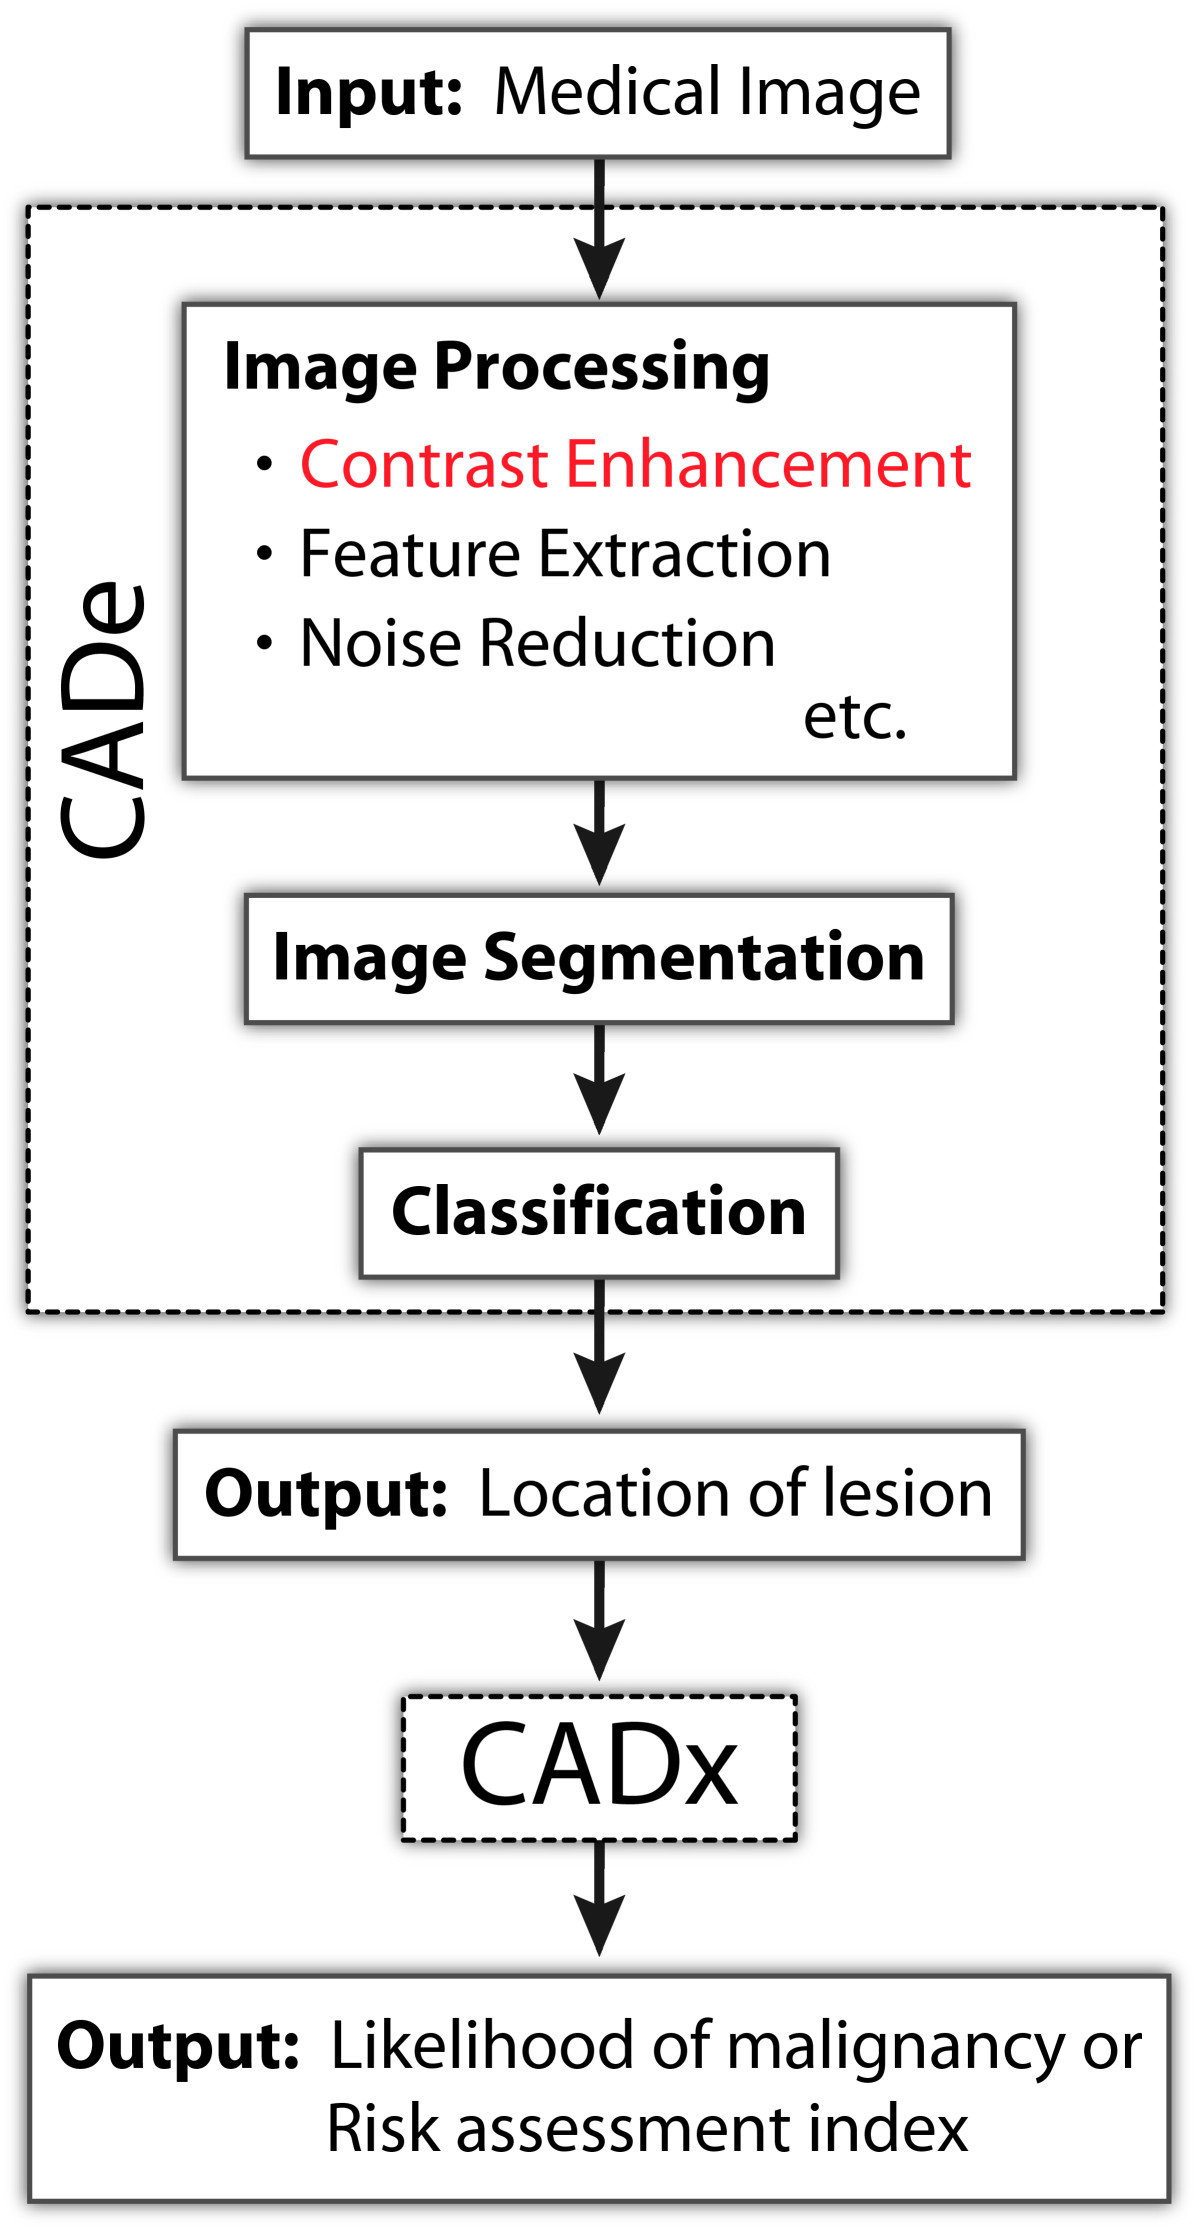 https://static-content.springer.com/image/art%3A10.1186%2F2043-9113-1-33/MediaObjects/13336_2011_Article_34_Fig1_HTML.jpg